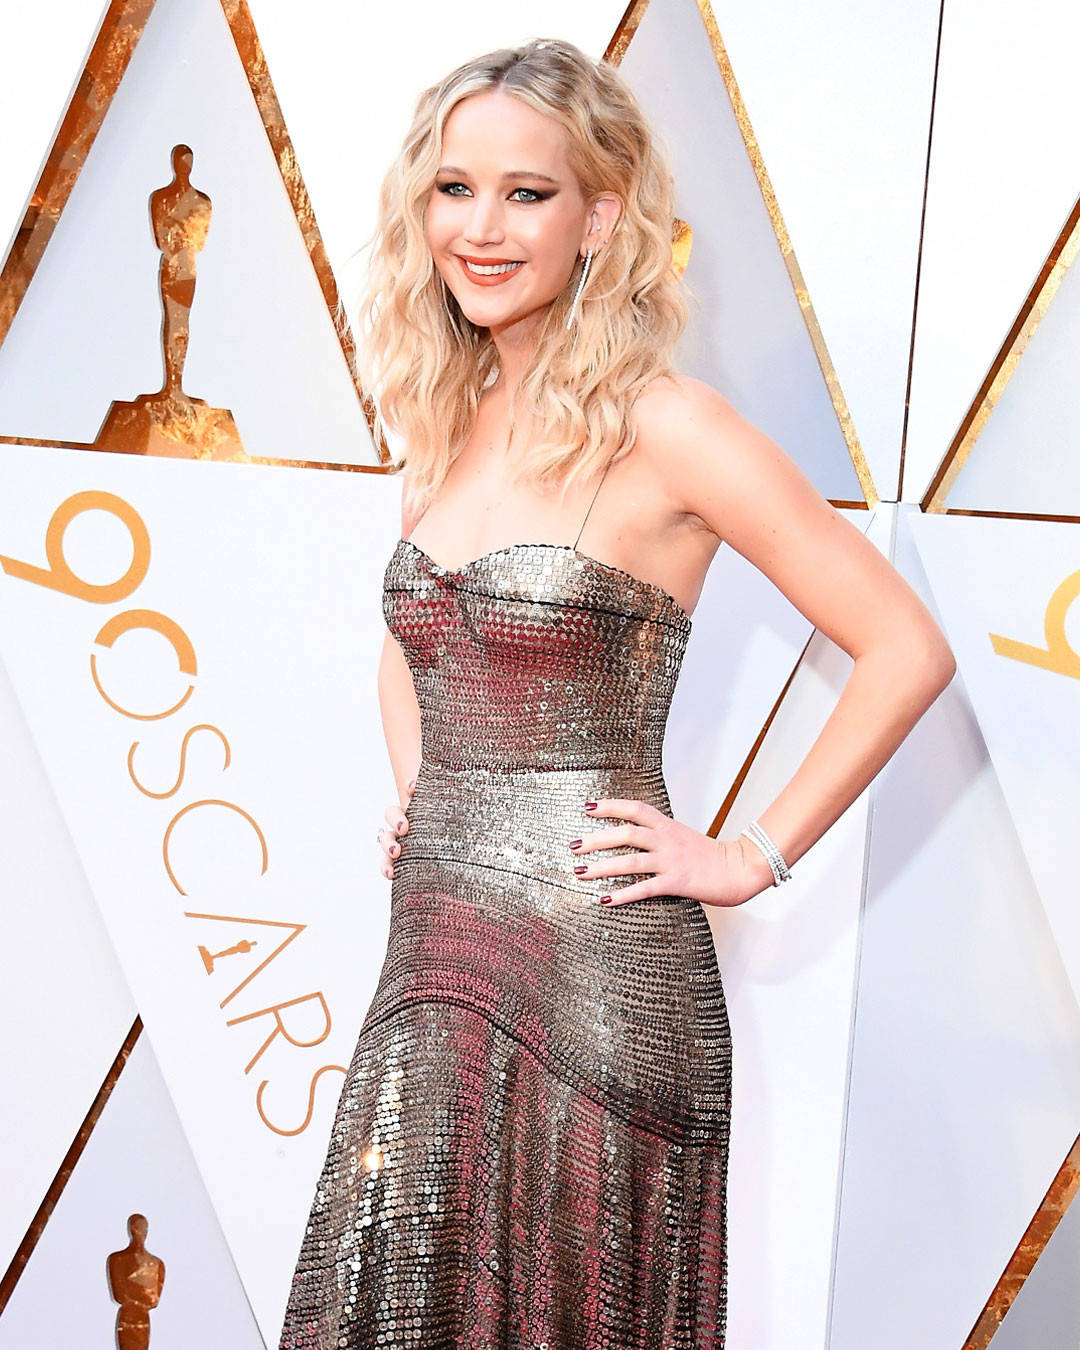 rs_1080x1350-180304163841-1080x1350-jennifer-lawrence-oscars-2018